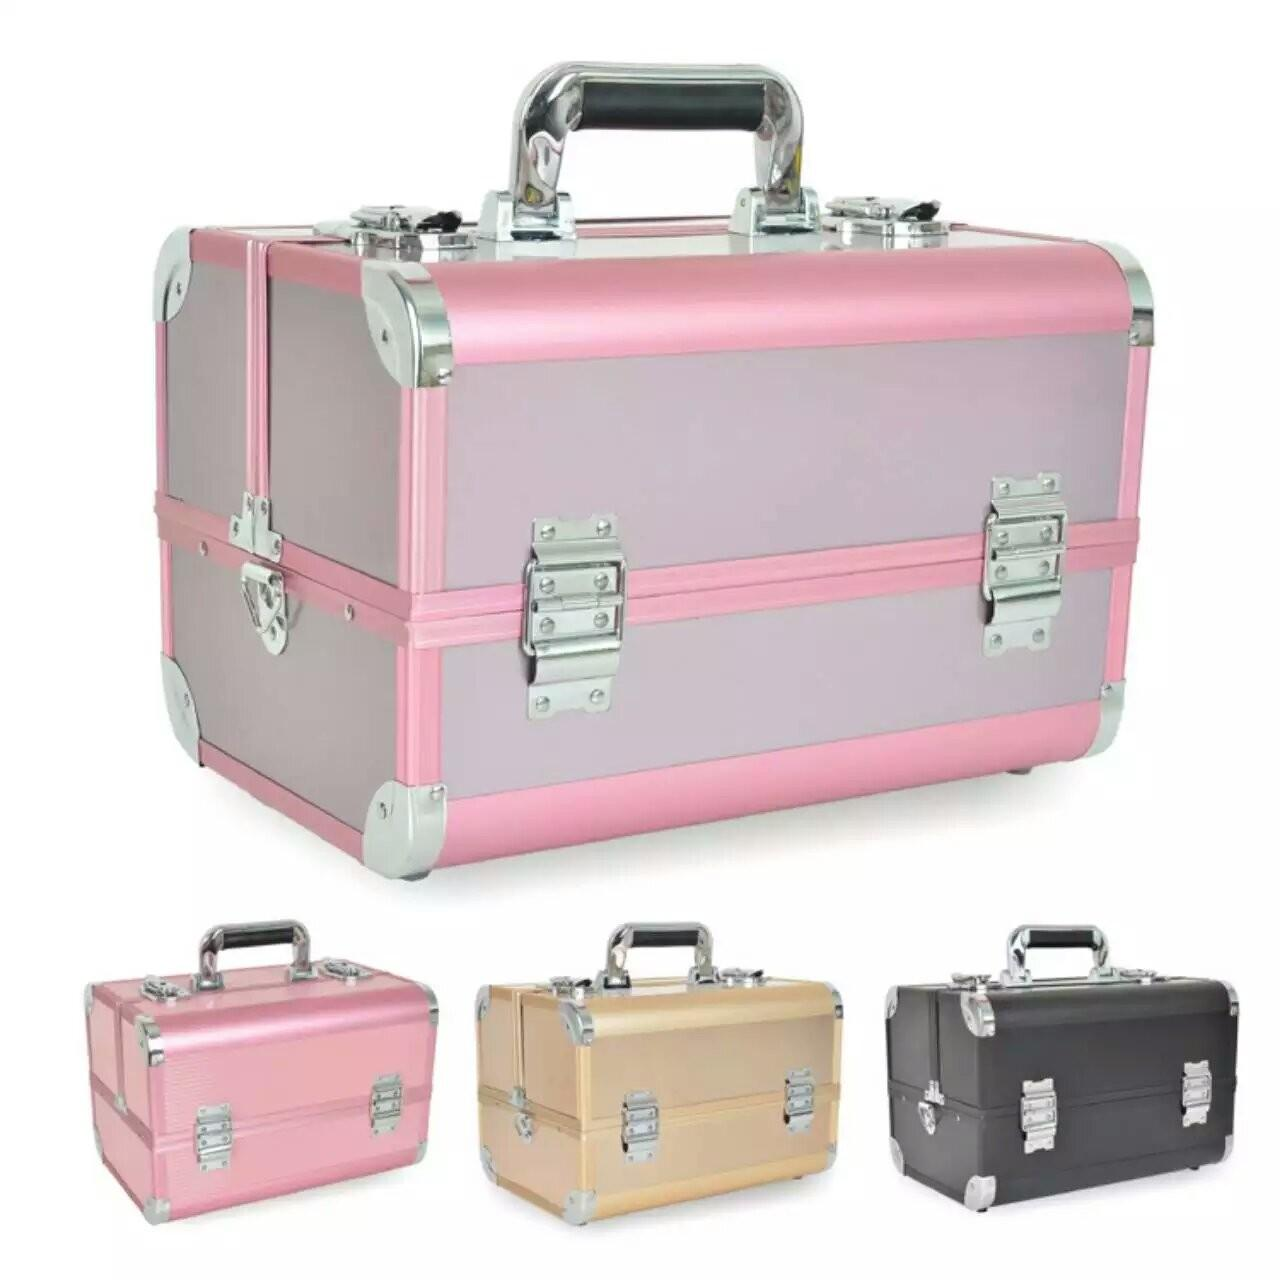 Quality Portable aluminum beauty case with shoulder strap, plastic trays inside aluminum makeup case to storage toiletry artist for sale